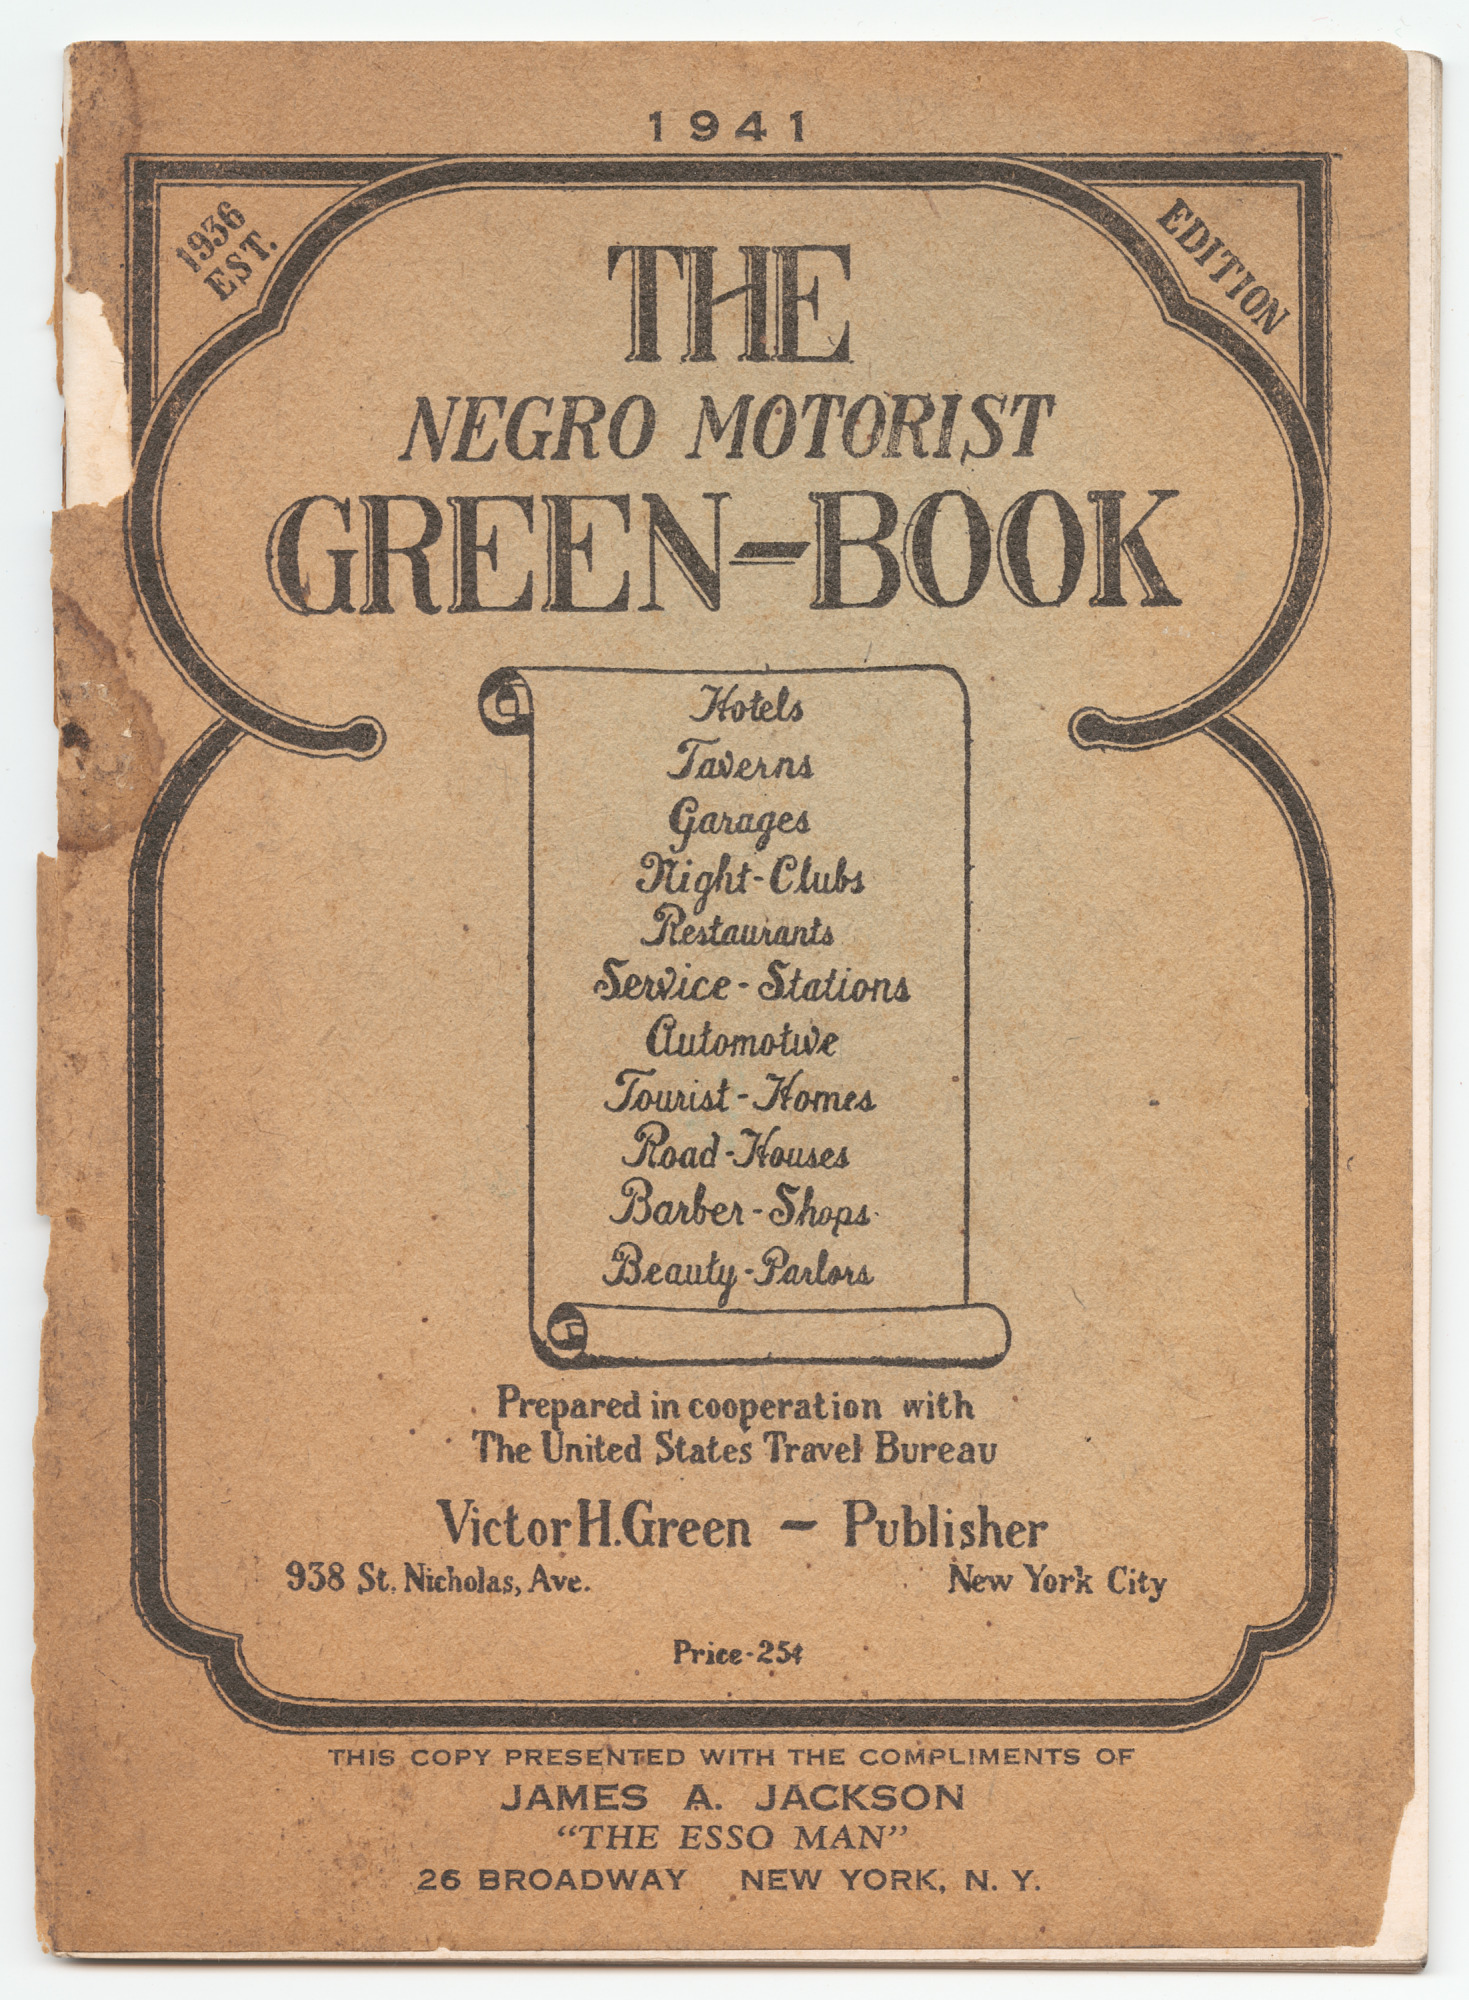 Negro Motorist Green-Book, 1941